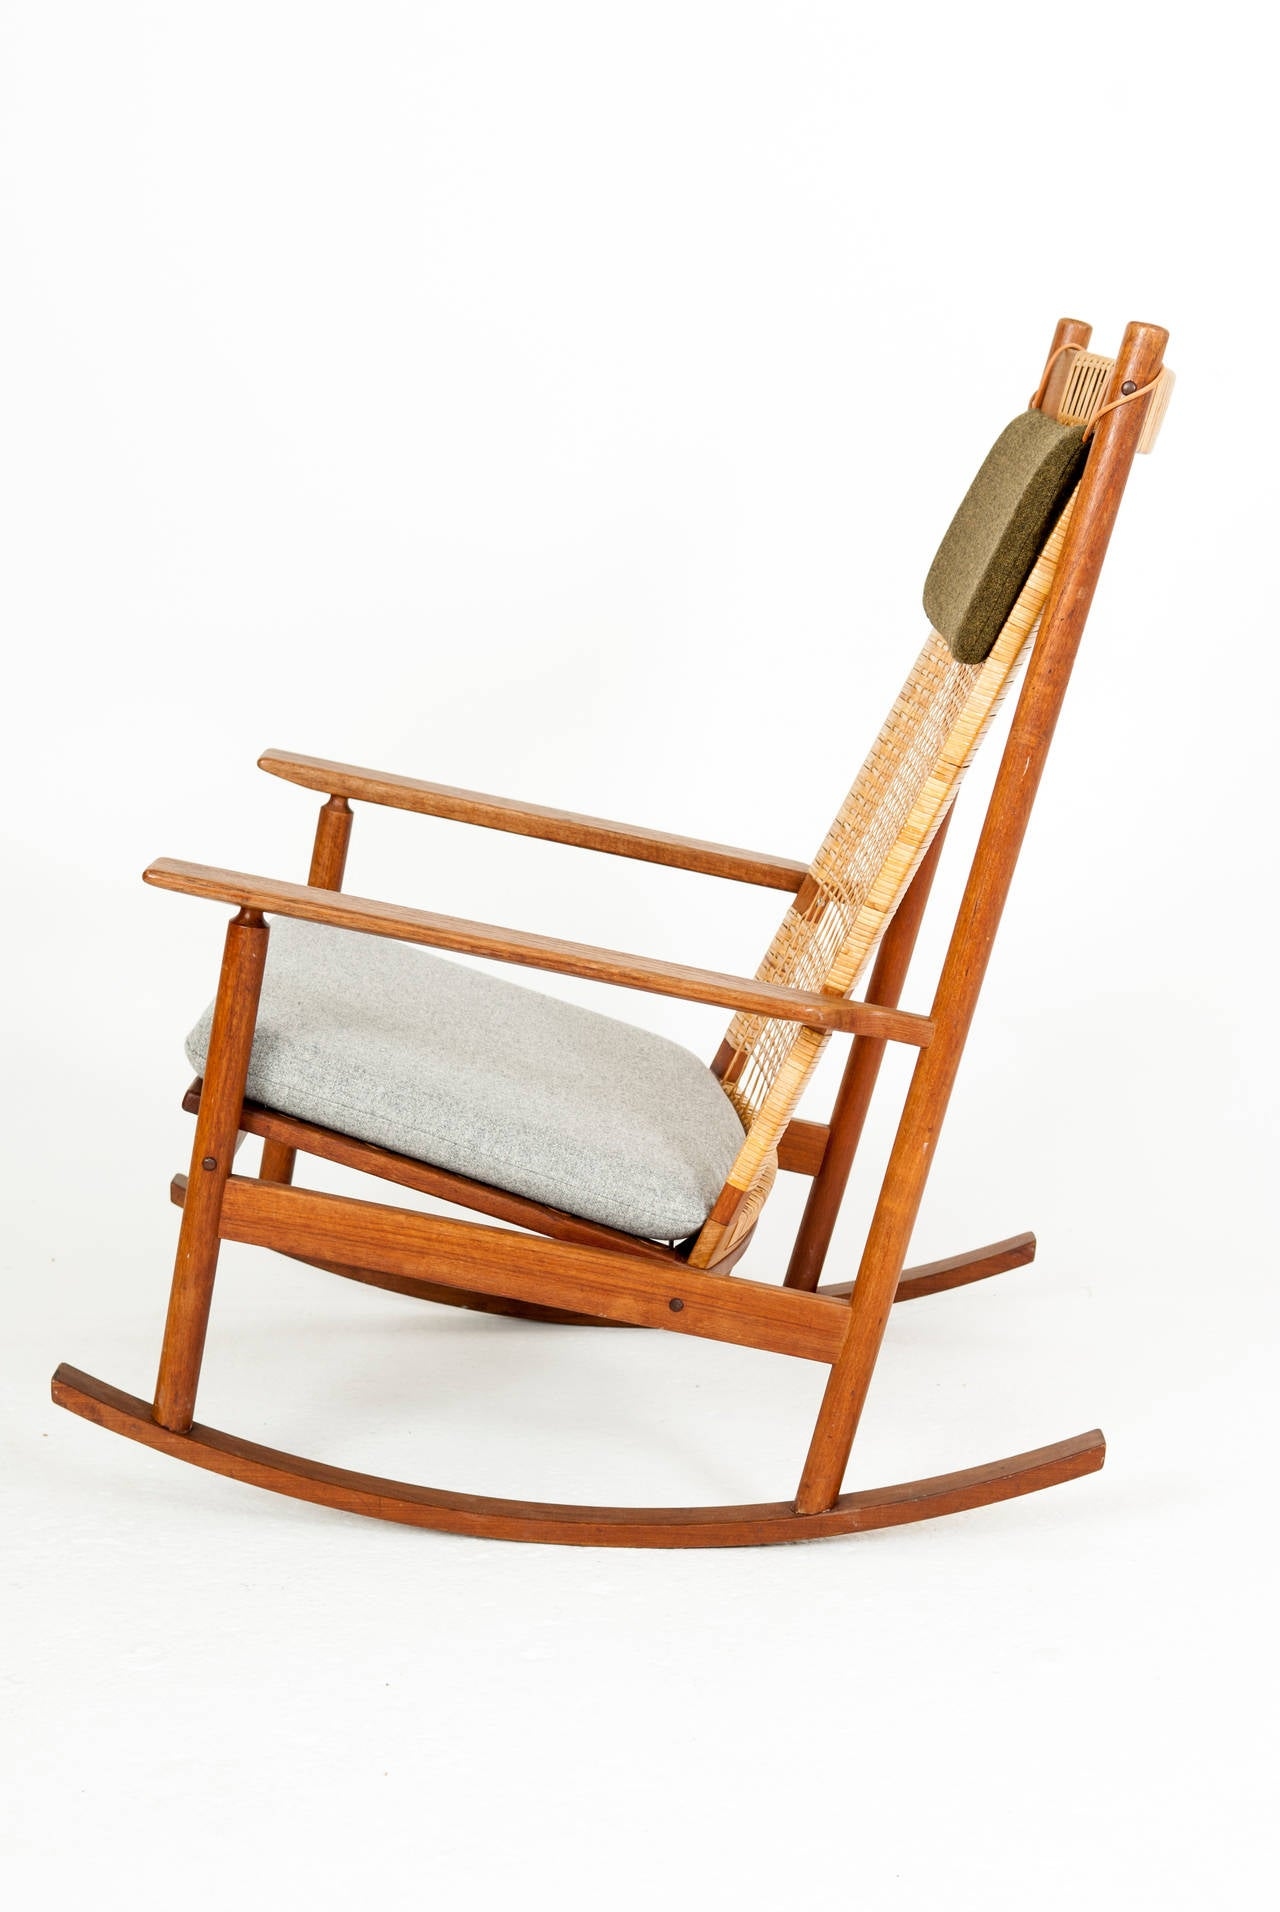 This Hans Olsen, Rocking Chair is no longer available.